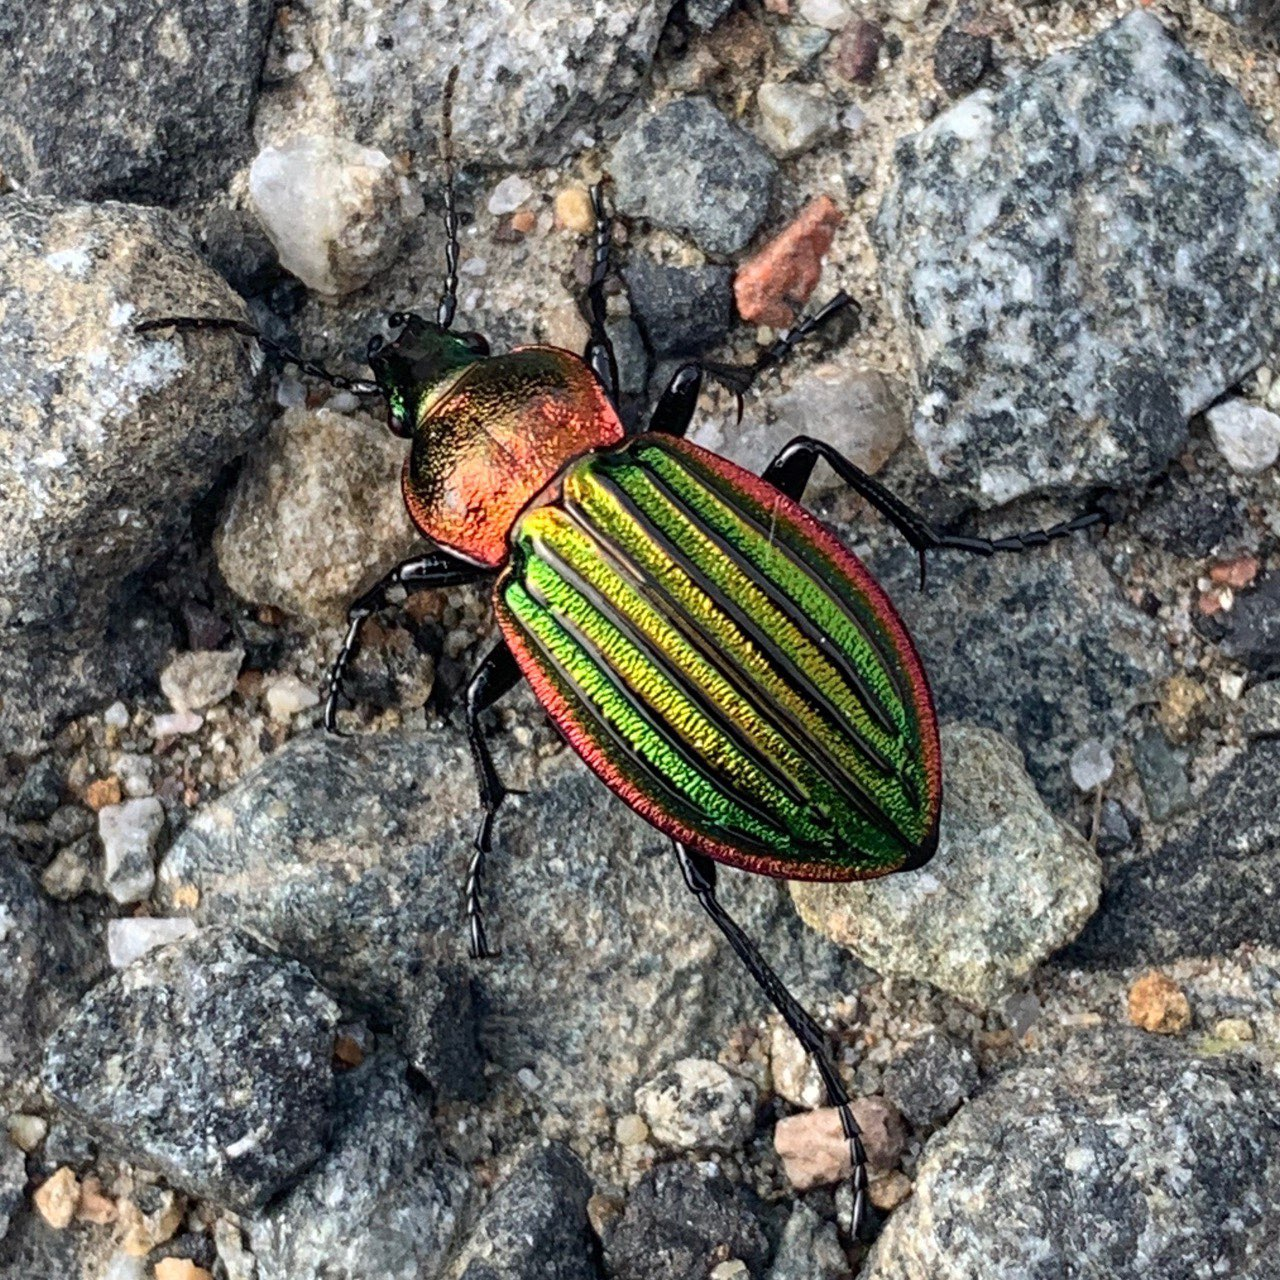 Ground Beetle. Carabus nitens perhaps.